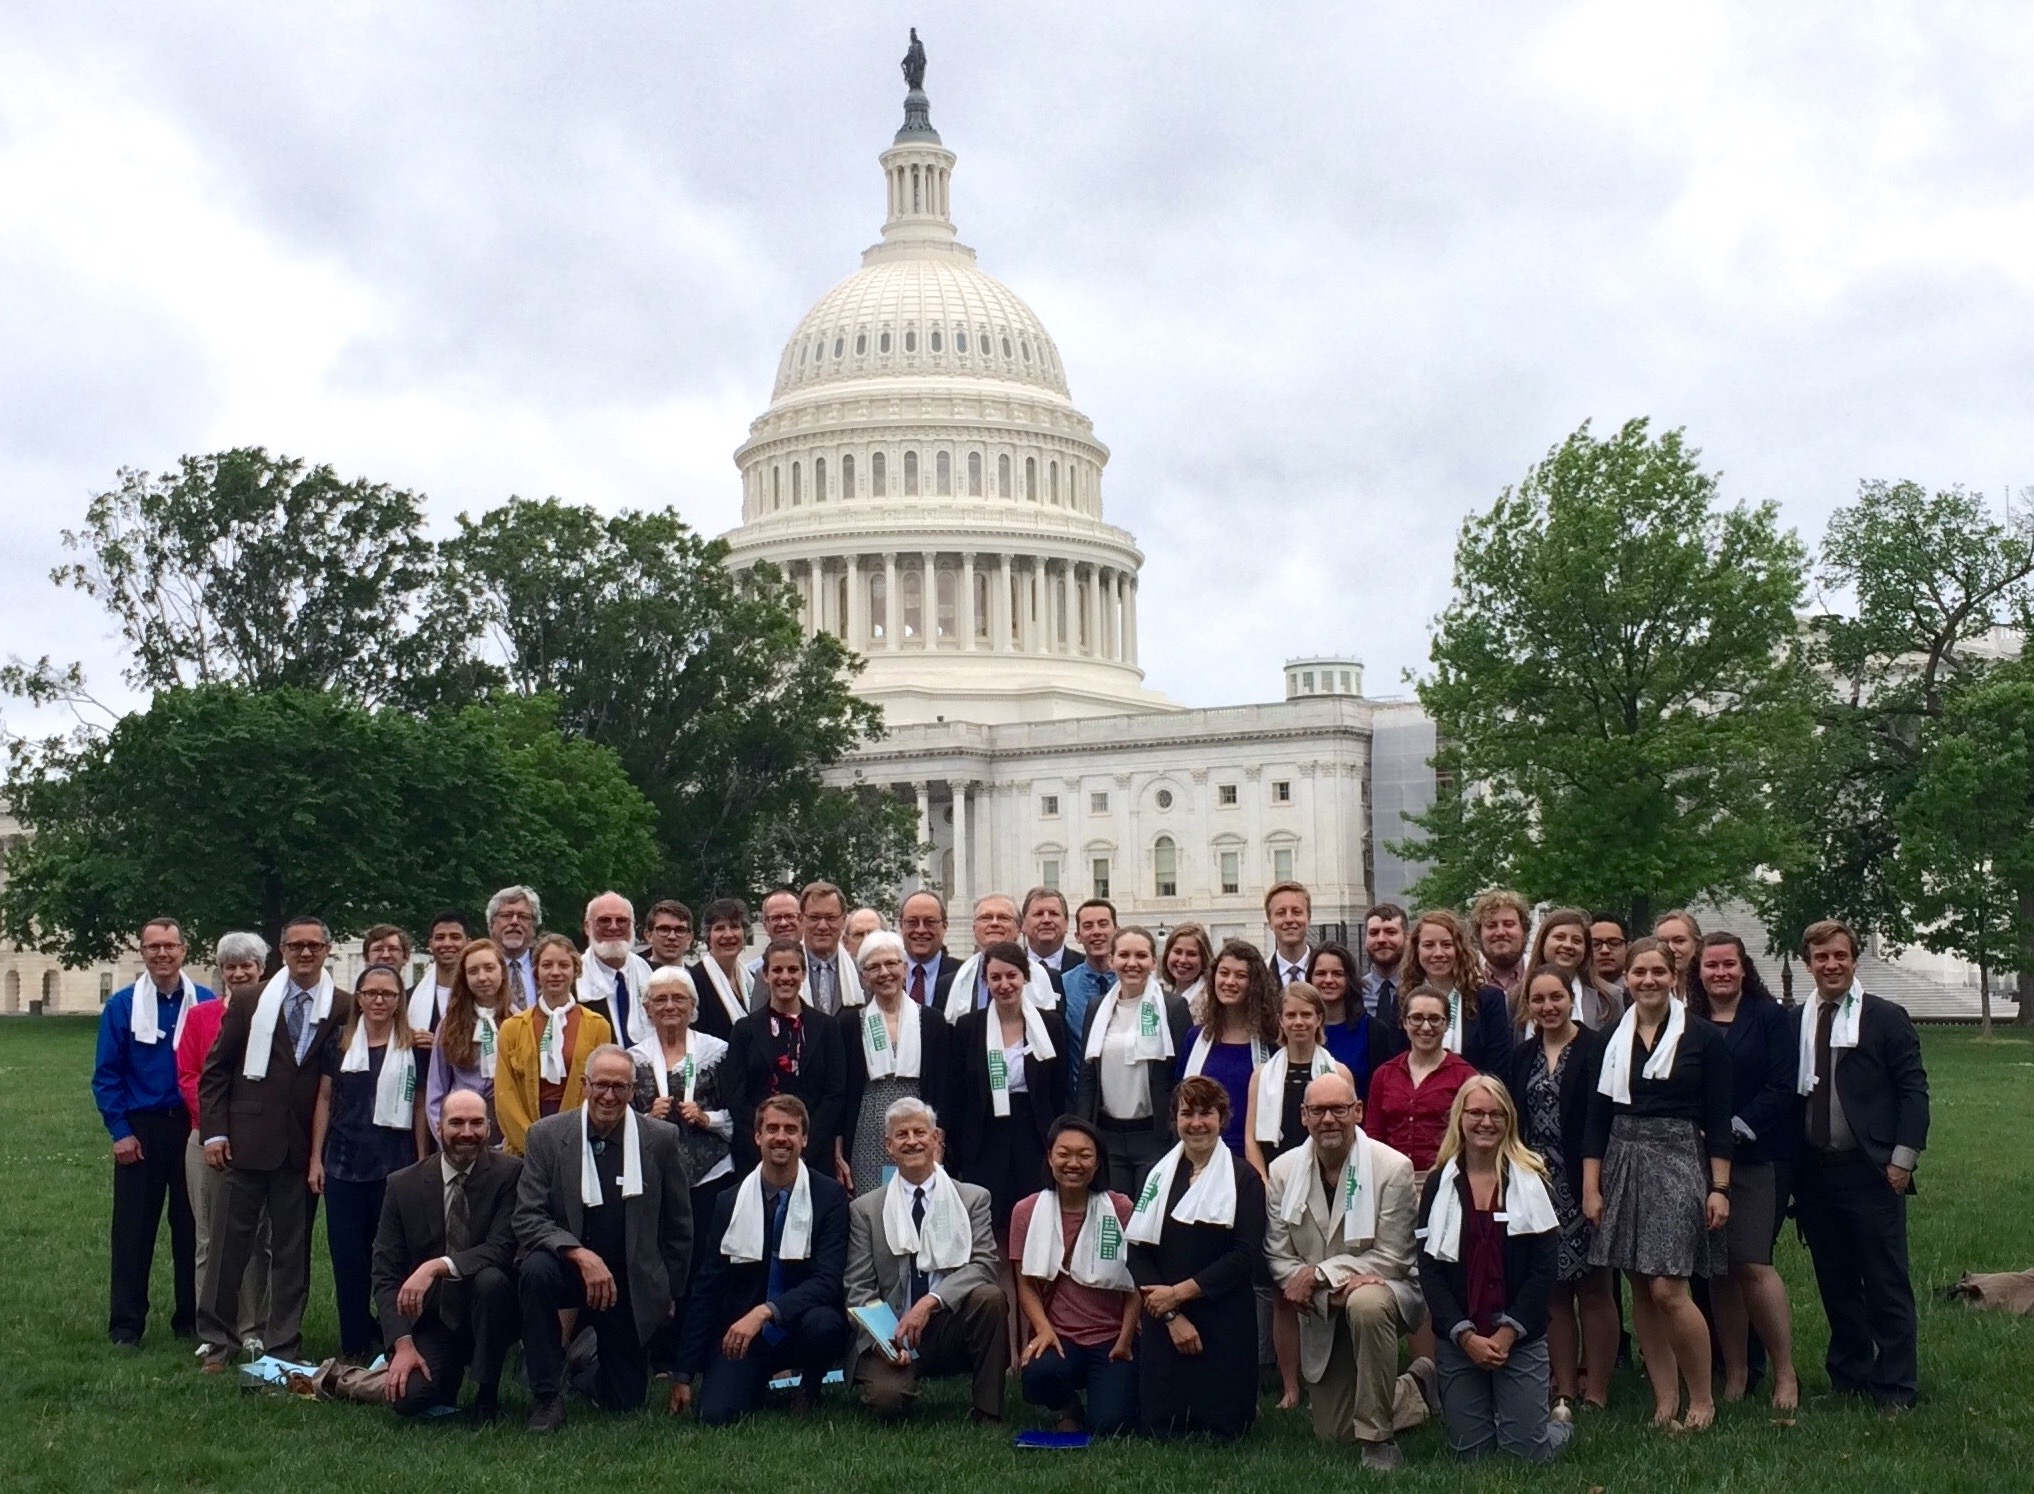 Acting in faith - In collaboration with Young Evangelicals for Climate Action and the Christian Reformed Church we led a team of 61 evangelicals to participate in the 2017 People's Climate March and to lobby Congress for action on climate.